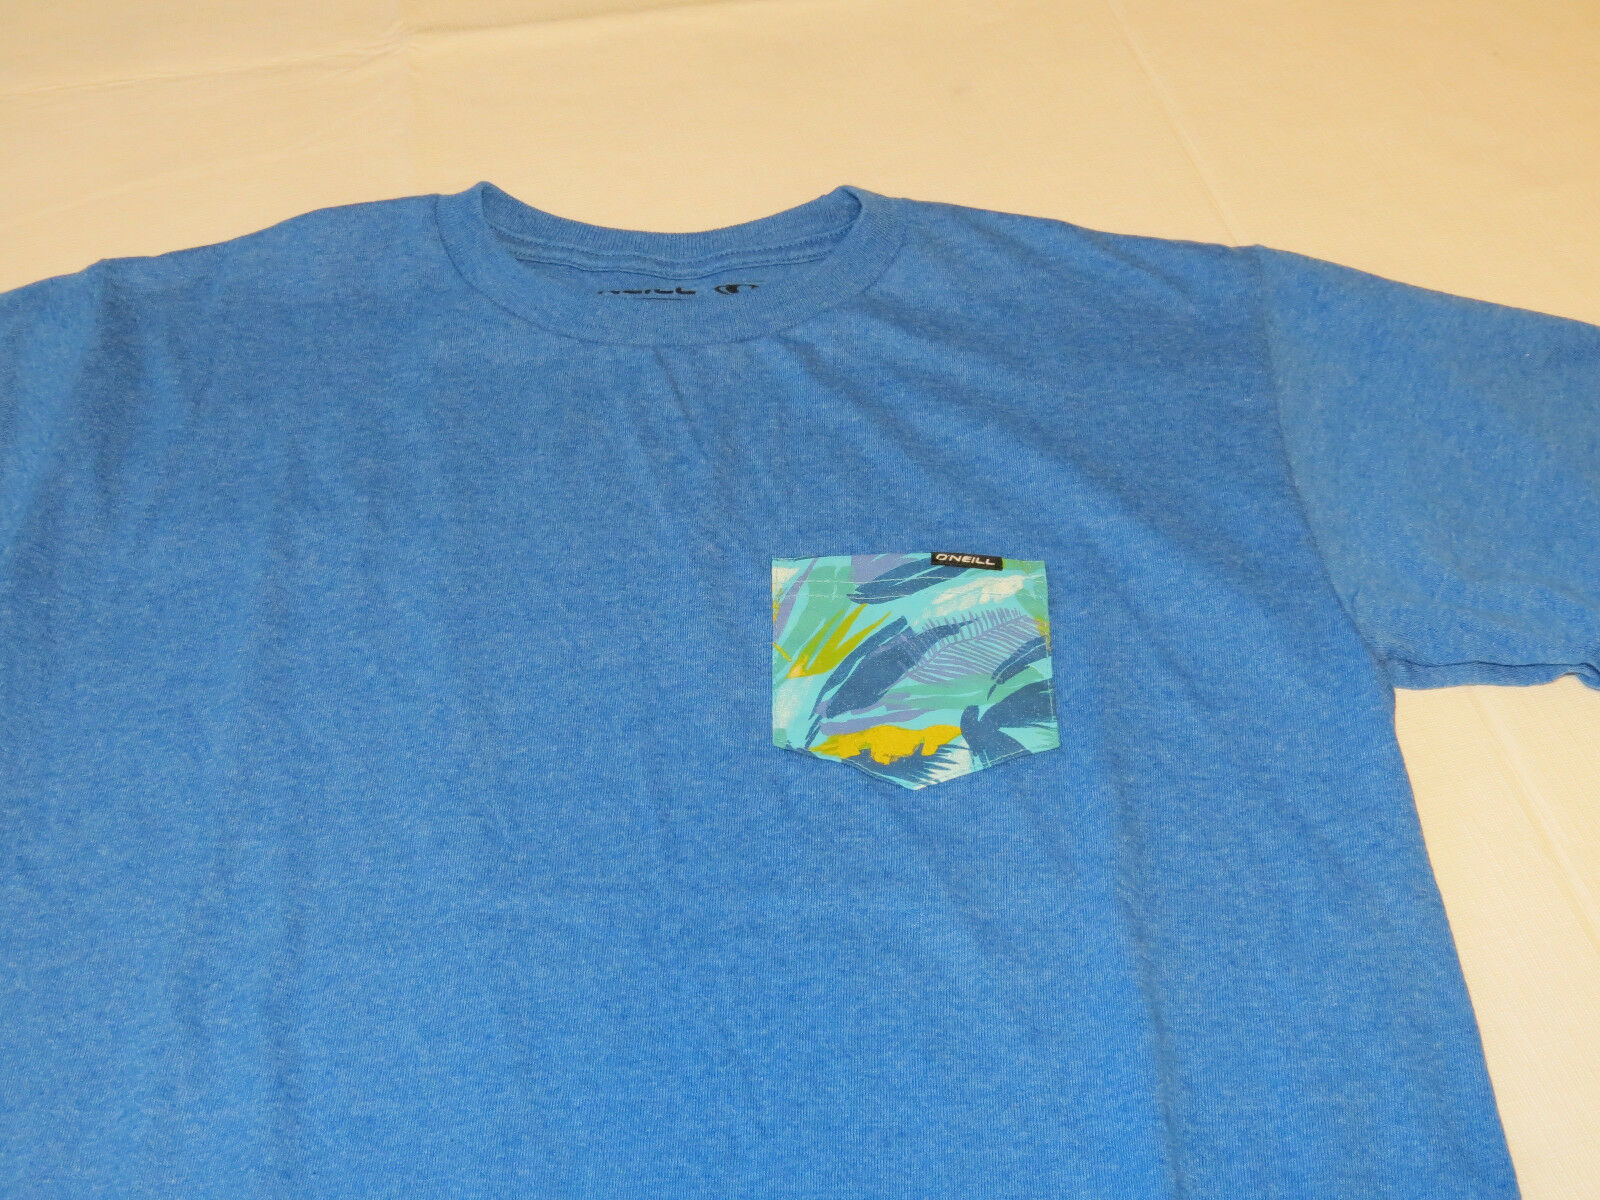 Boys youth O'Neill surf skate XL Burner T shirt Youth TEE SBZ blue htr SU6218401 image 2